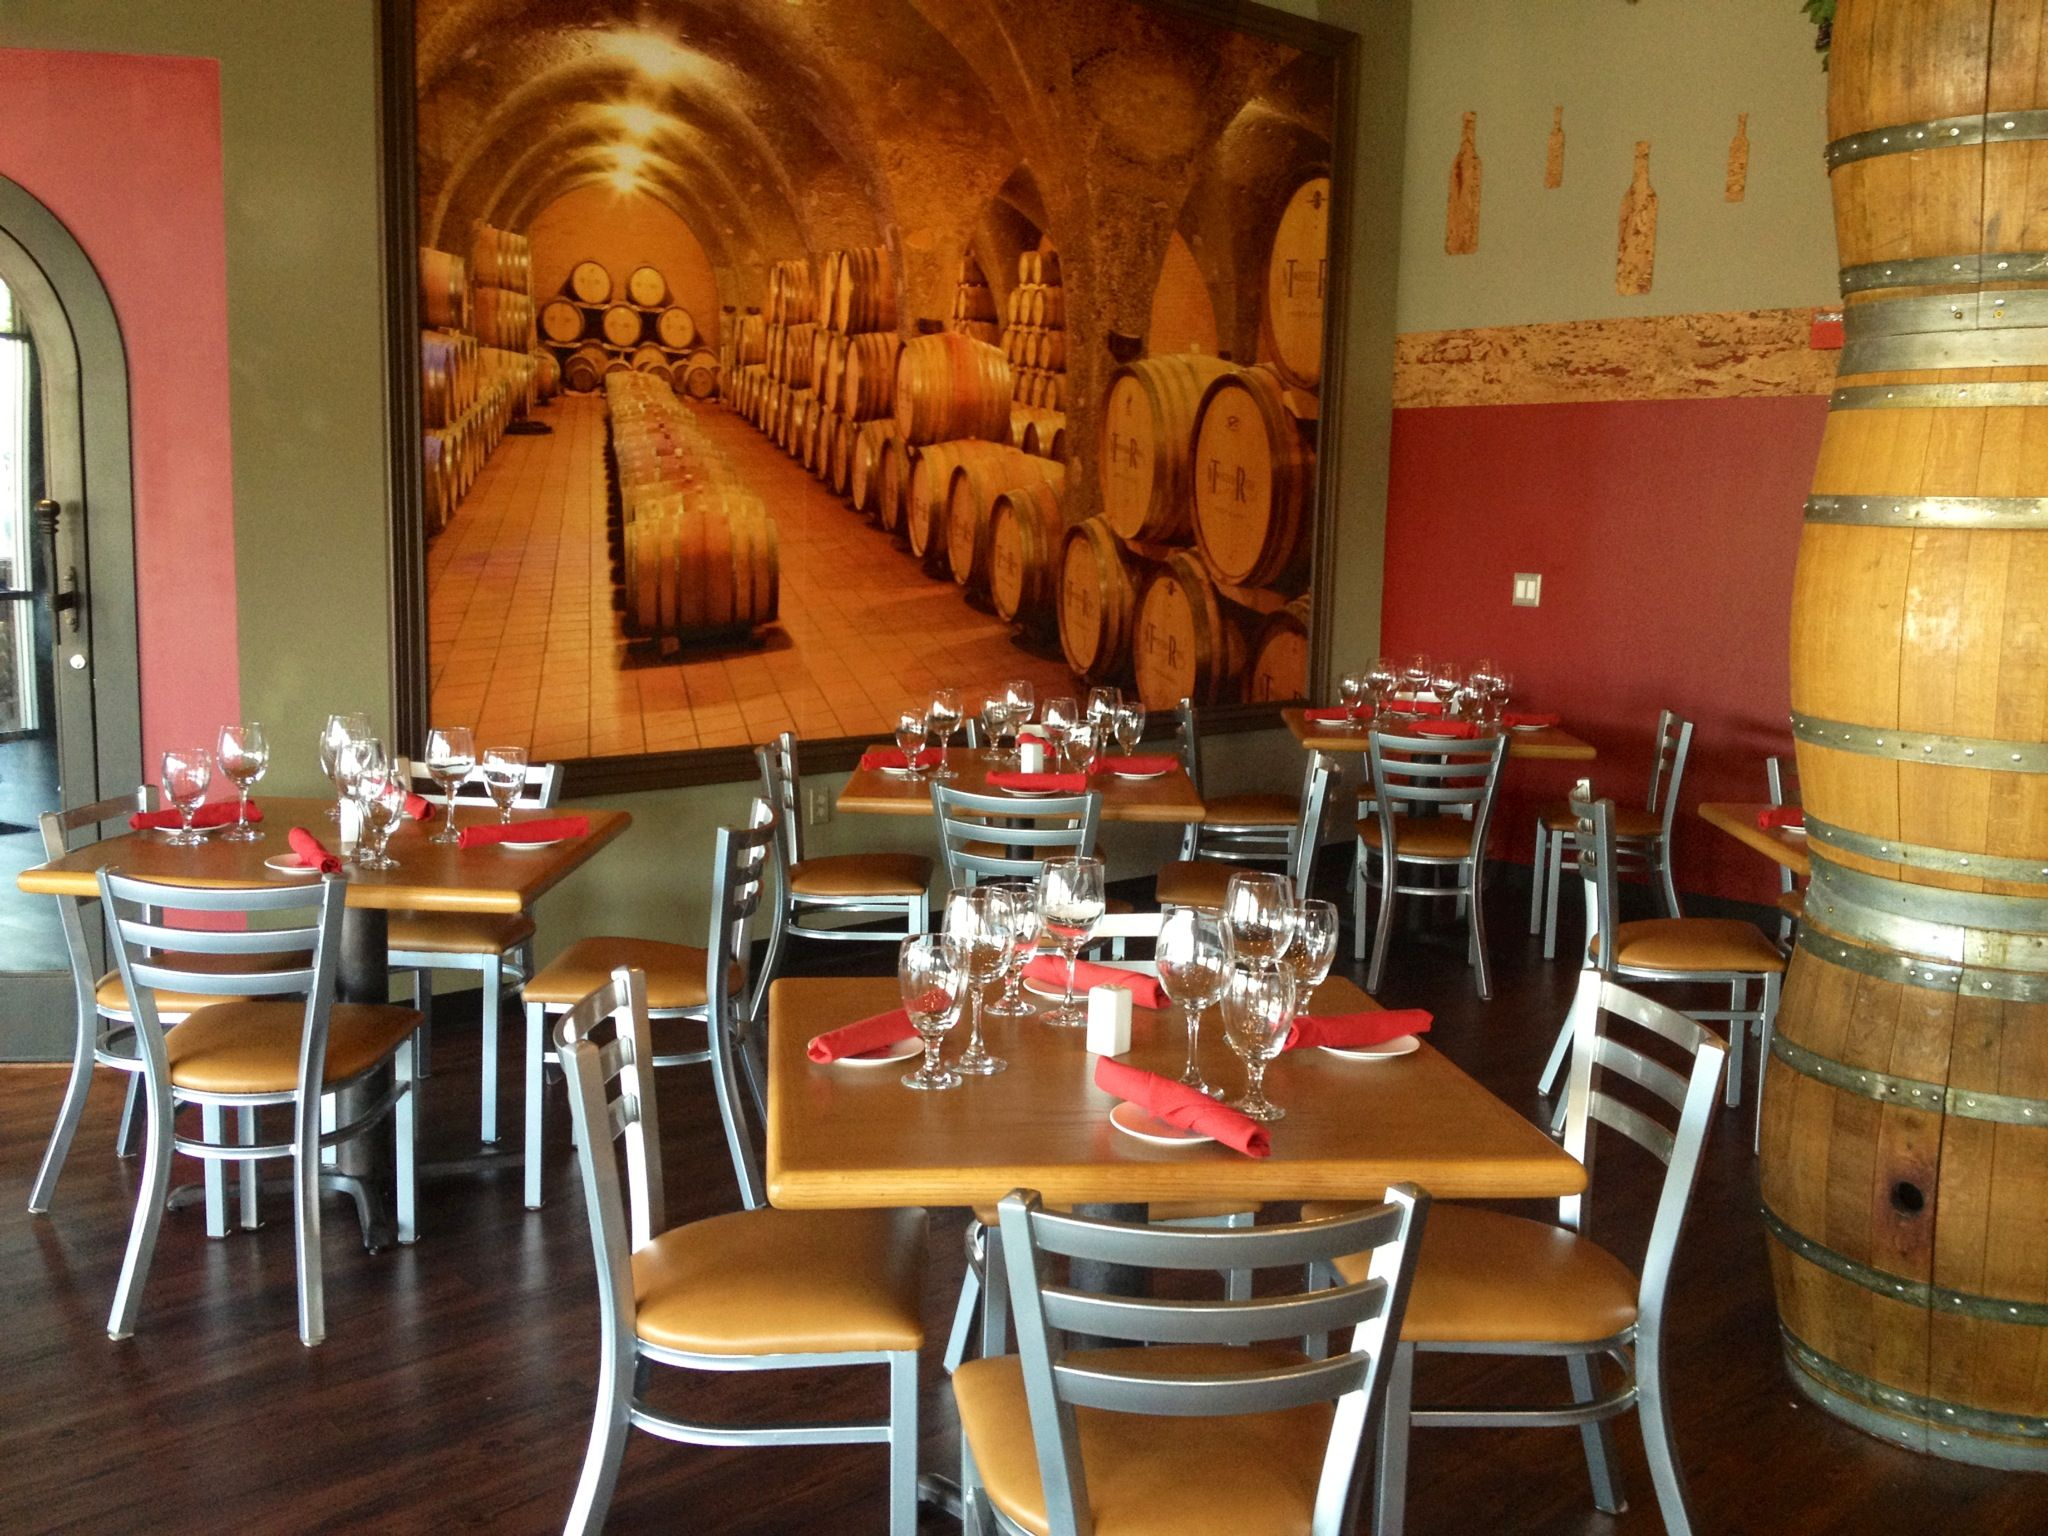 Inside winery and eatery